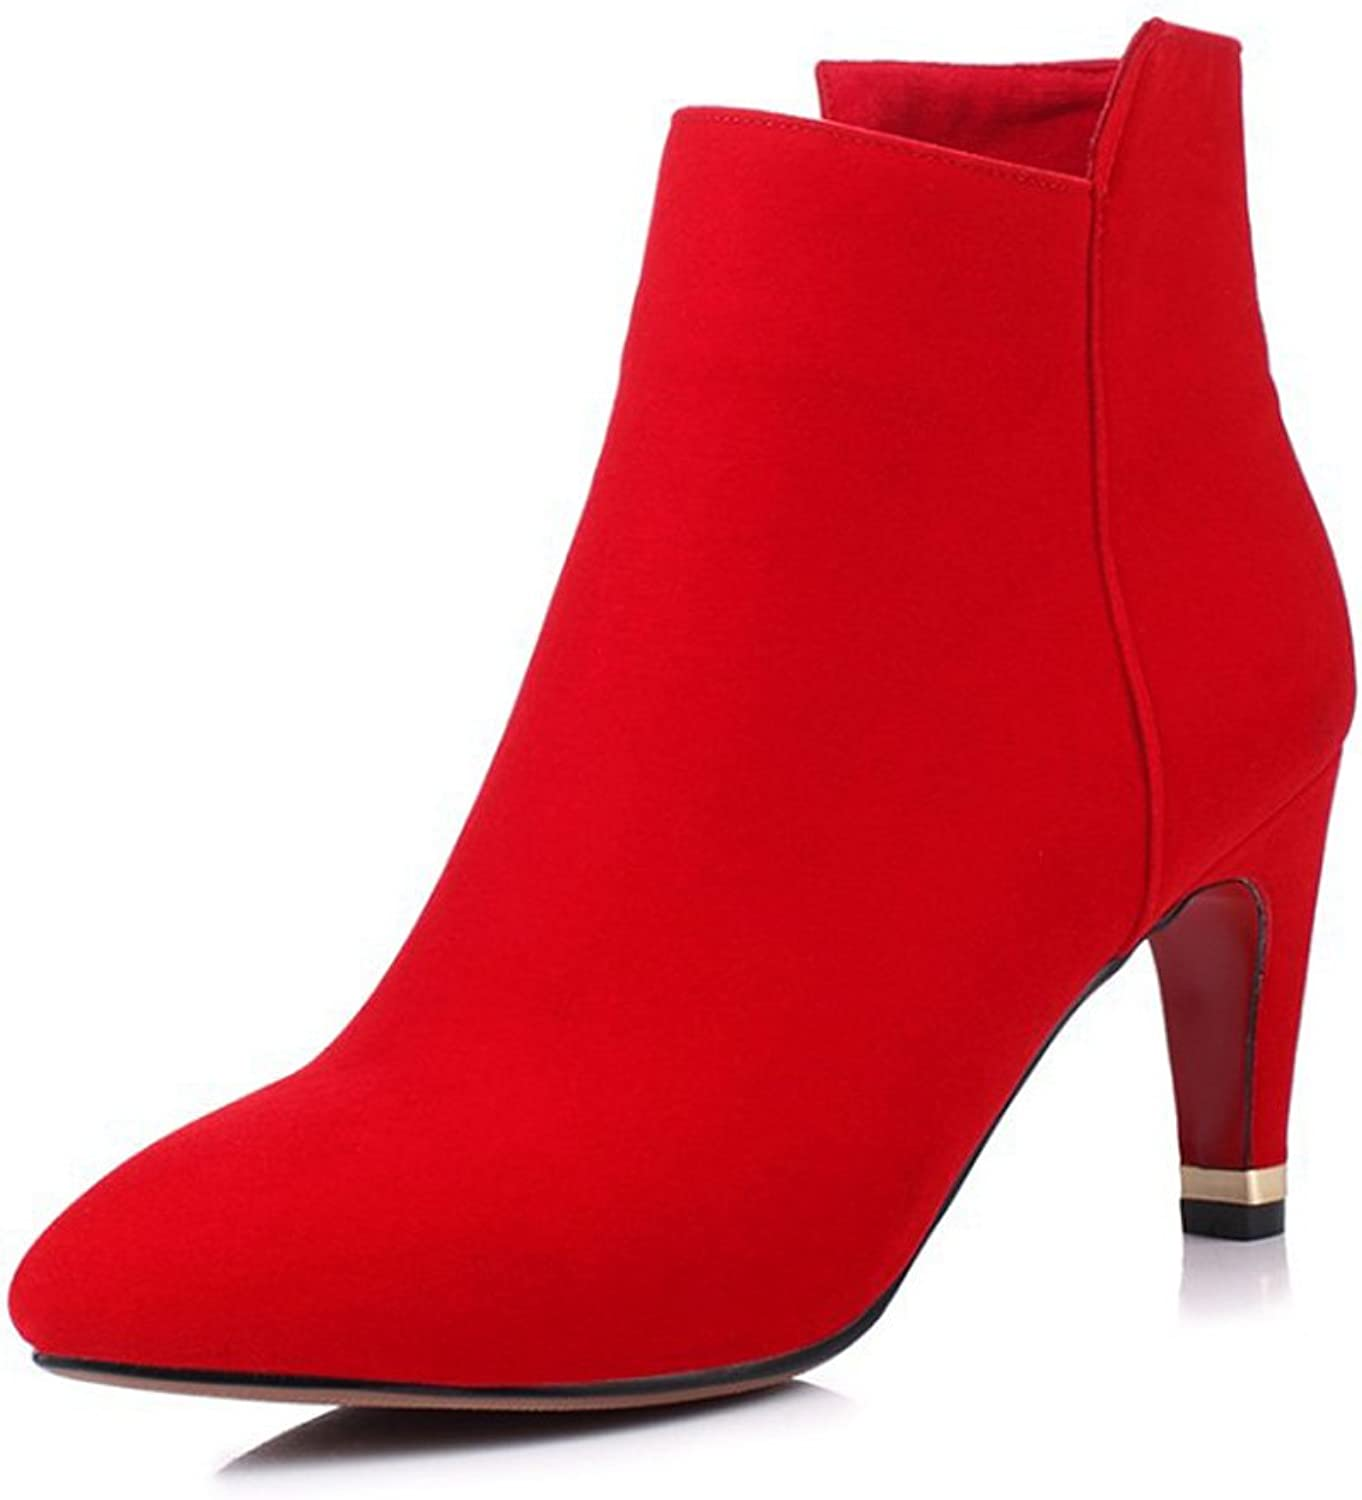 Lucksender Womens Pointed Toe Side Zip High Heel Ankle Boots